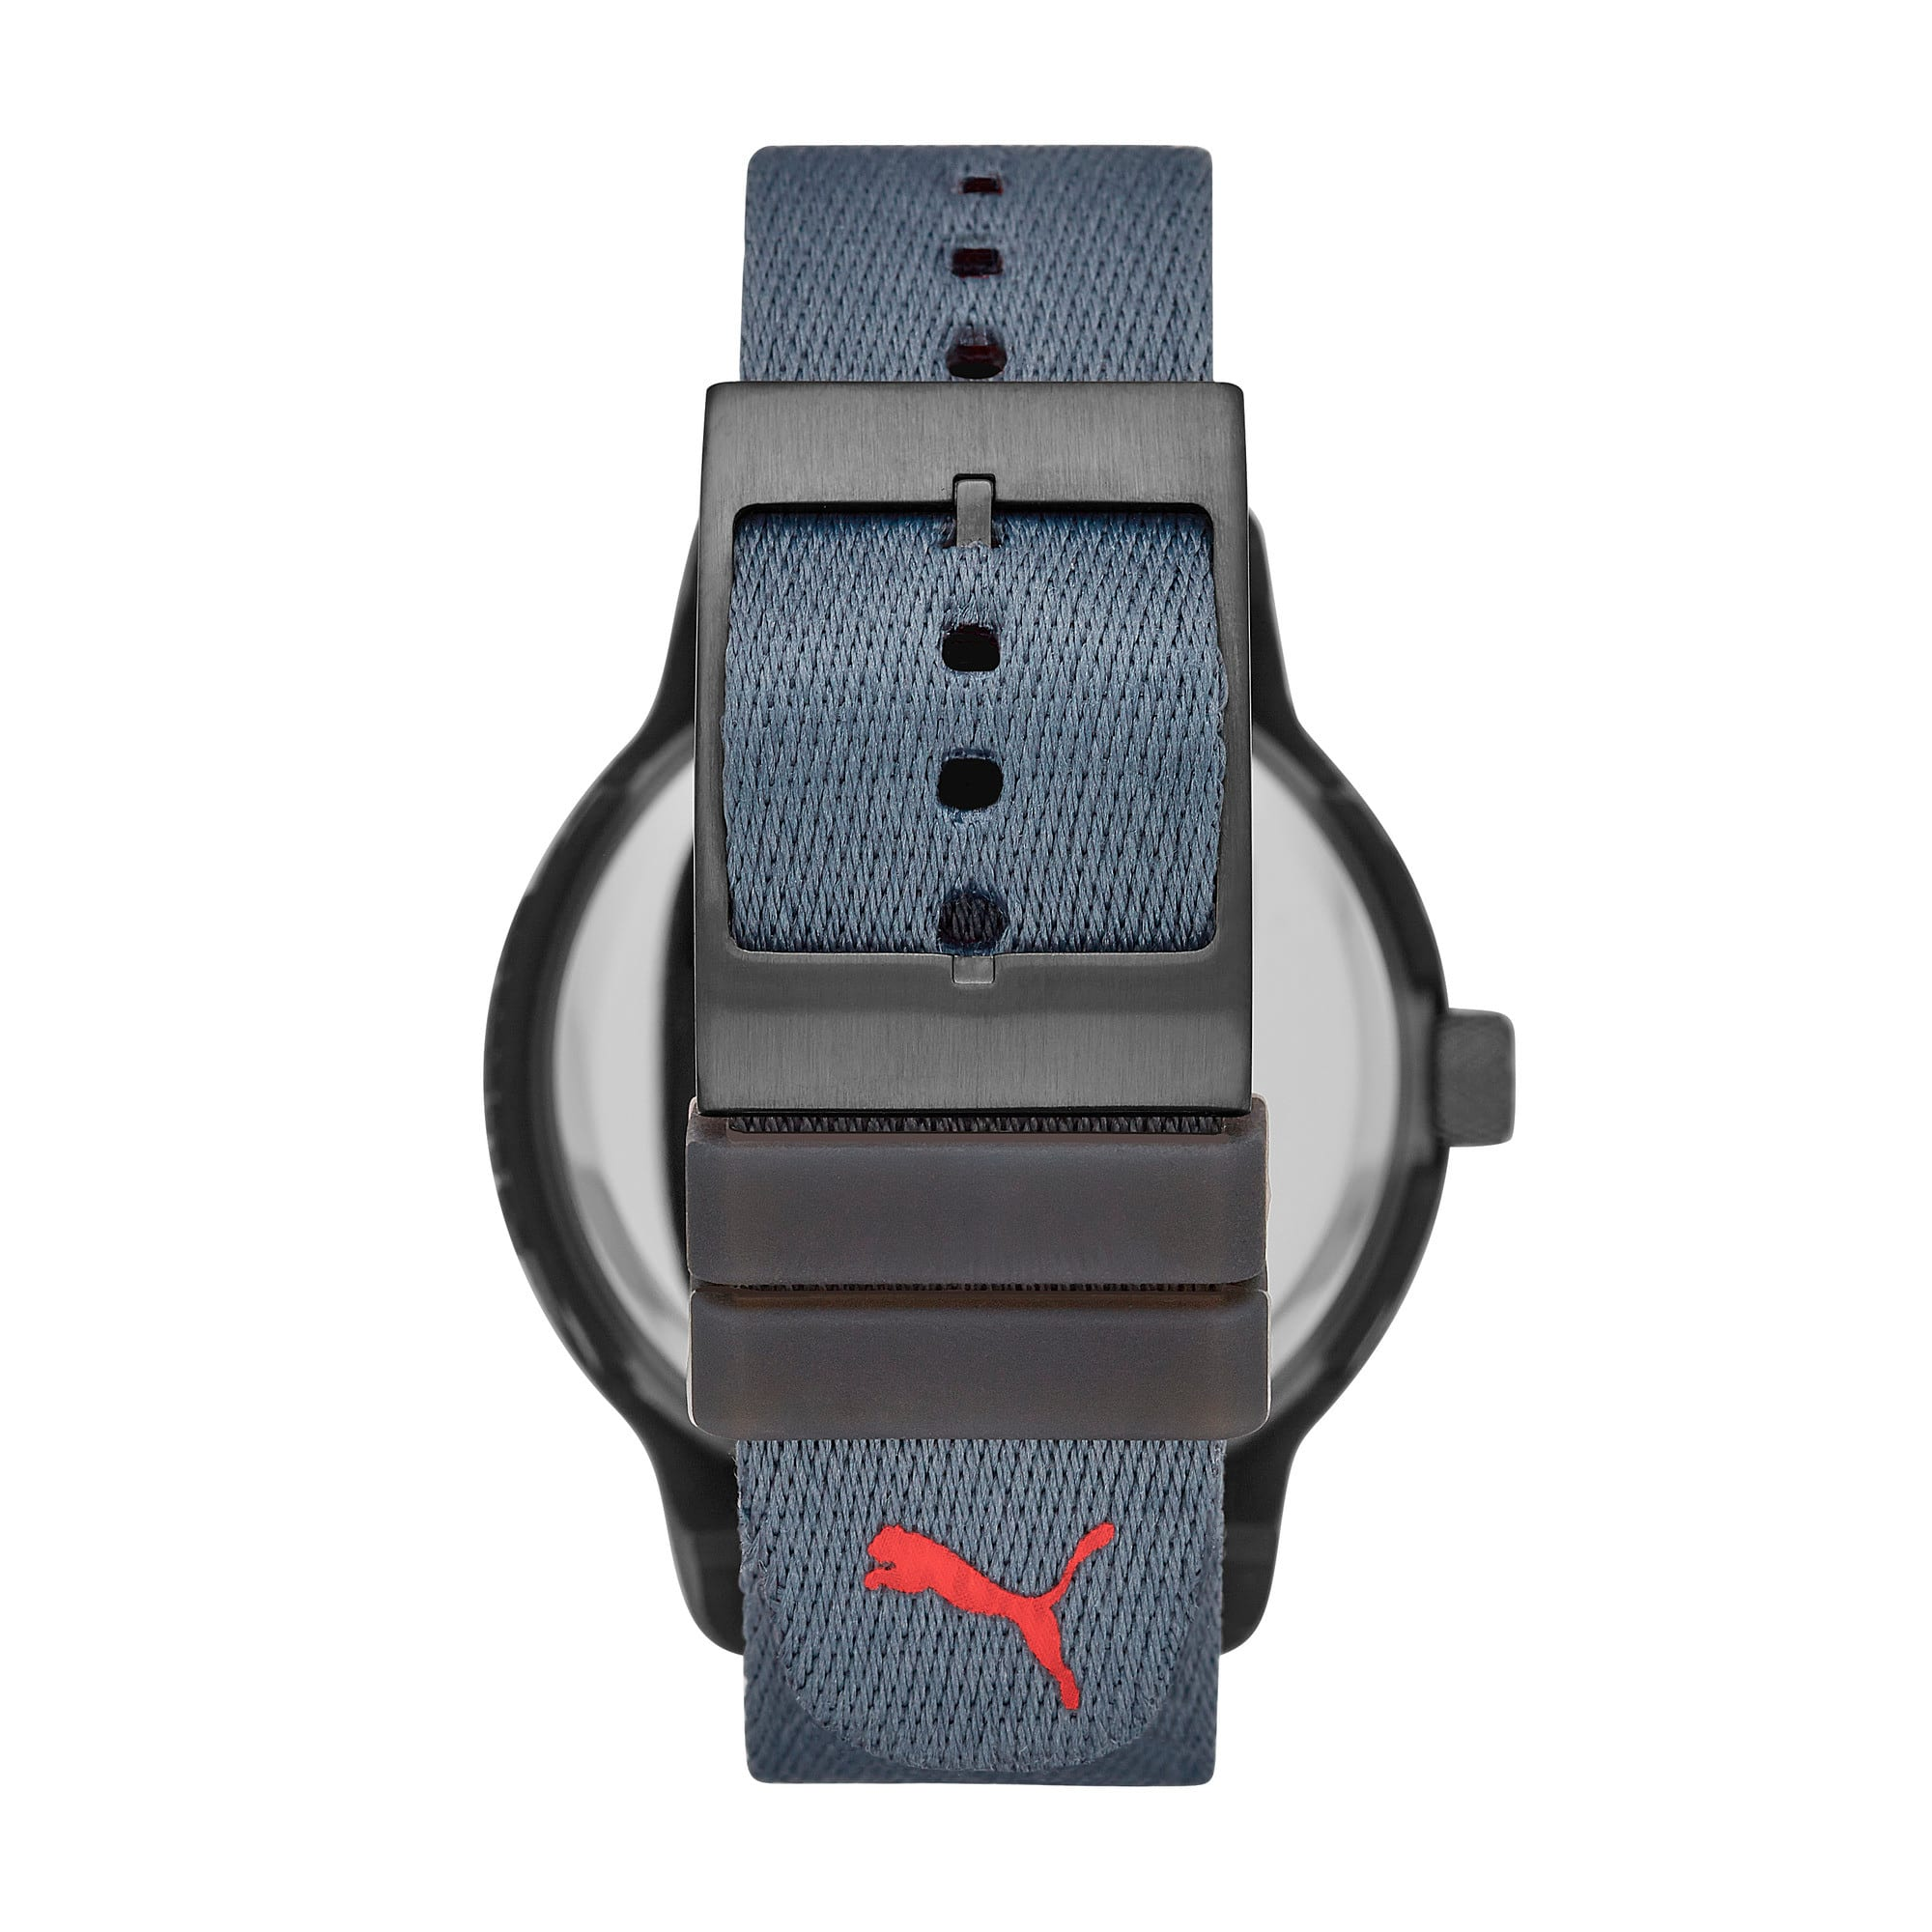 Thumbnail 2 of Reset v1 Reversible Watch, Blue/Red, medium